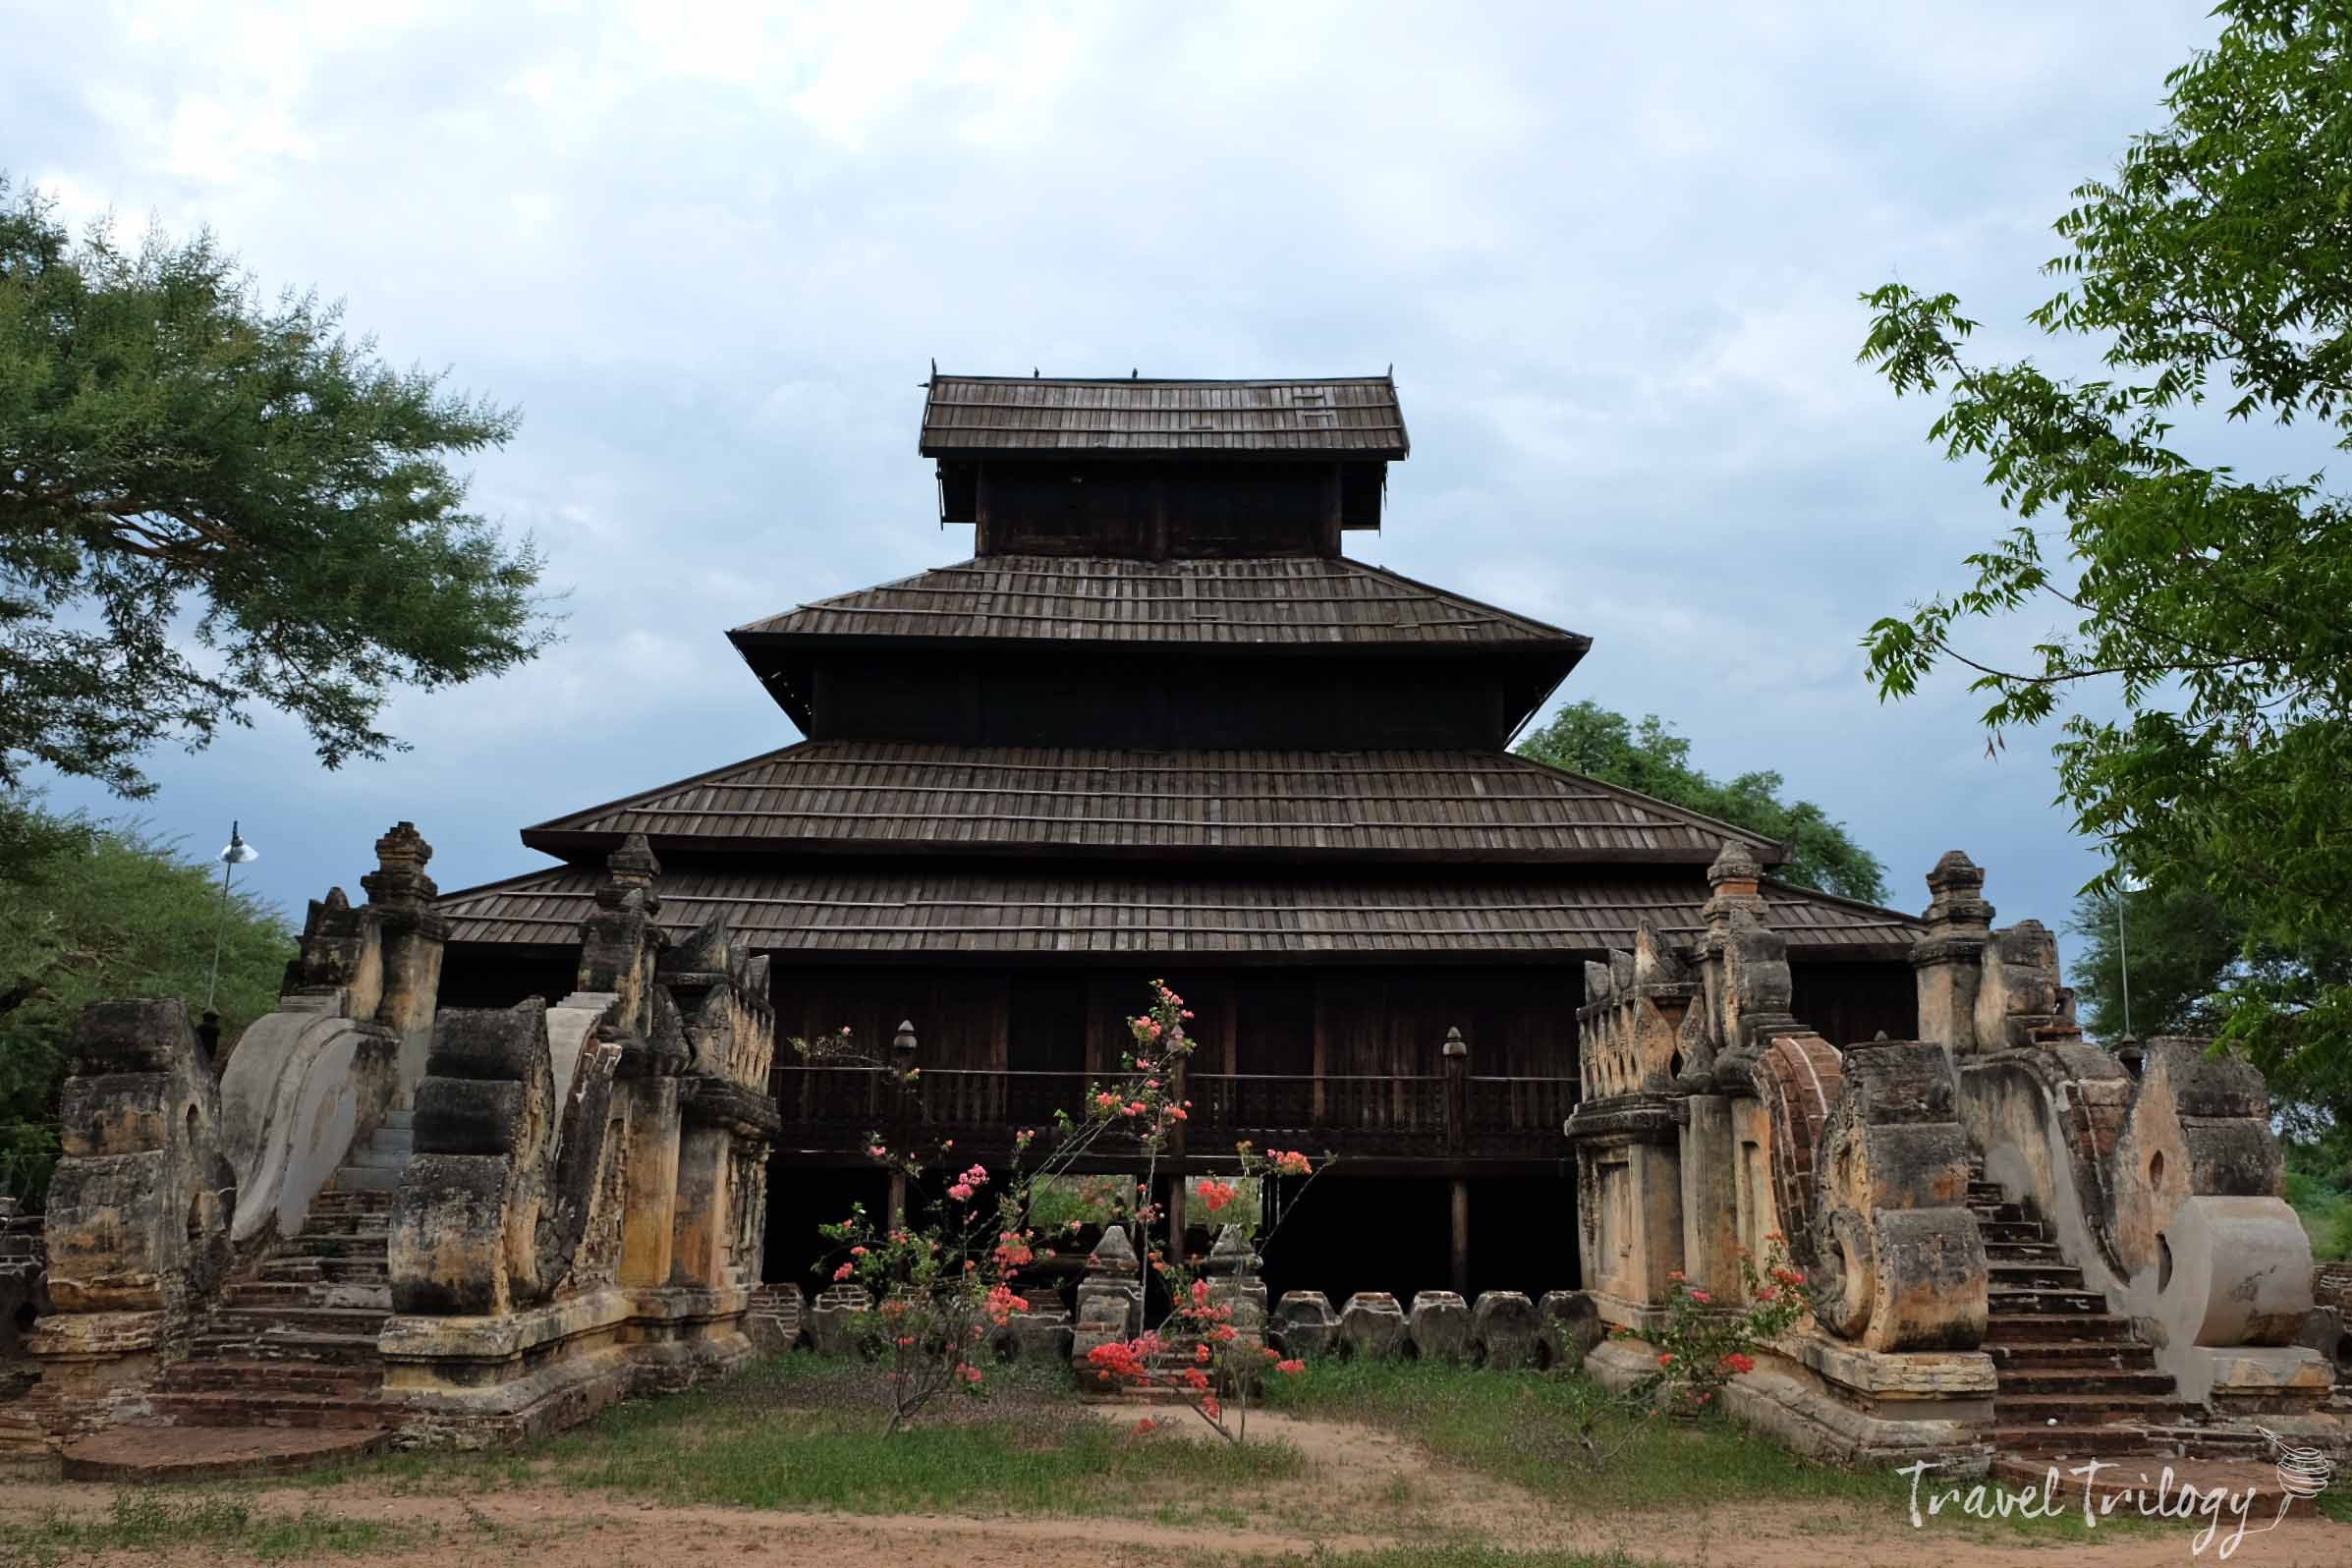 This teakwood monastery has been serving the Burmese spiritual formations.